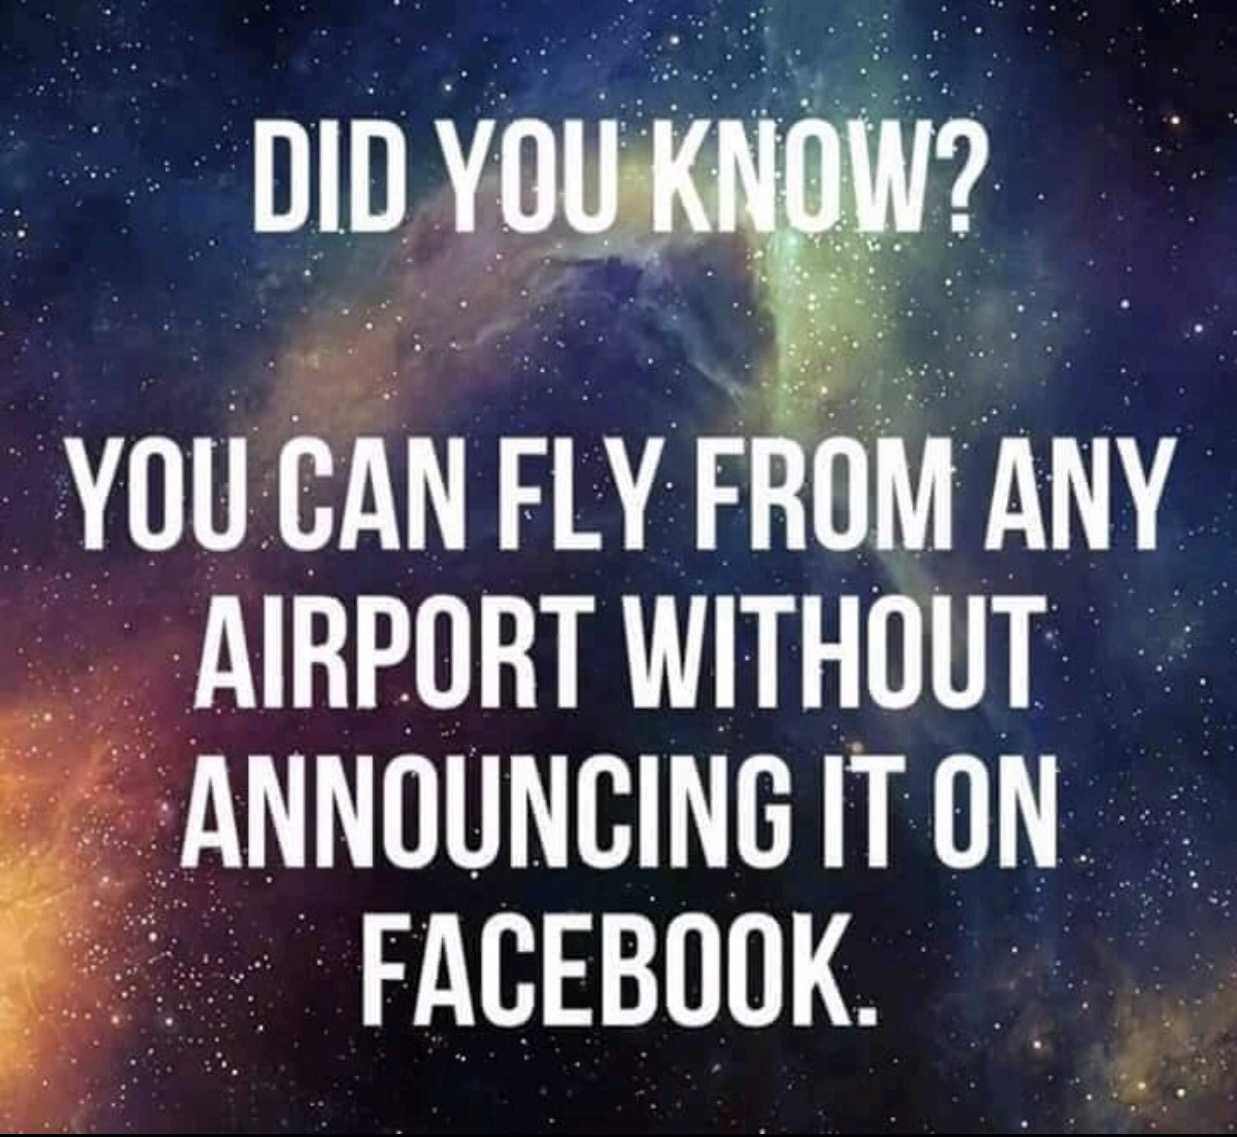 4 - Little known fun fact that you can fly right out of an airport without ever mentioning it on Facebook